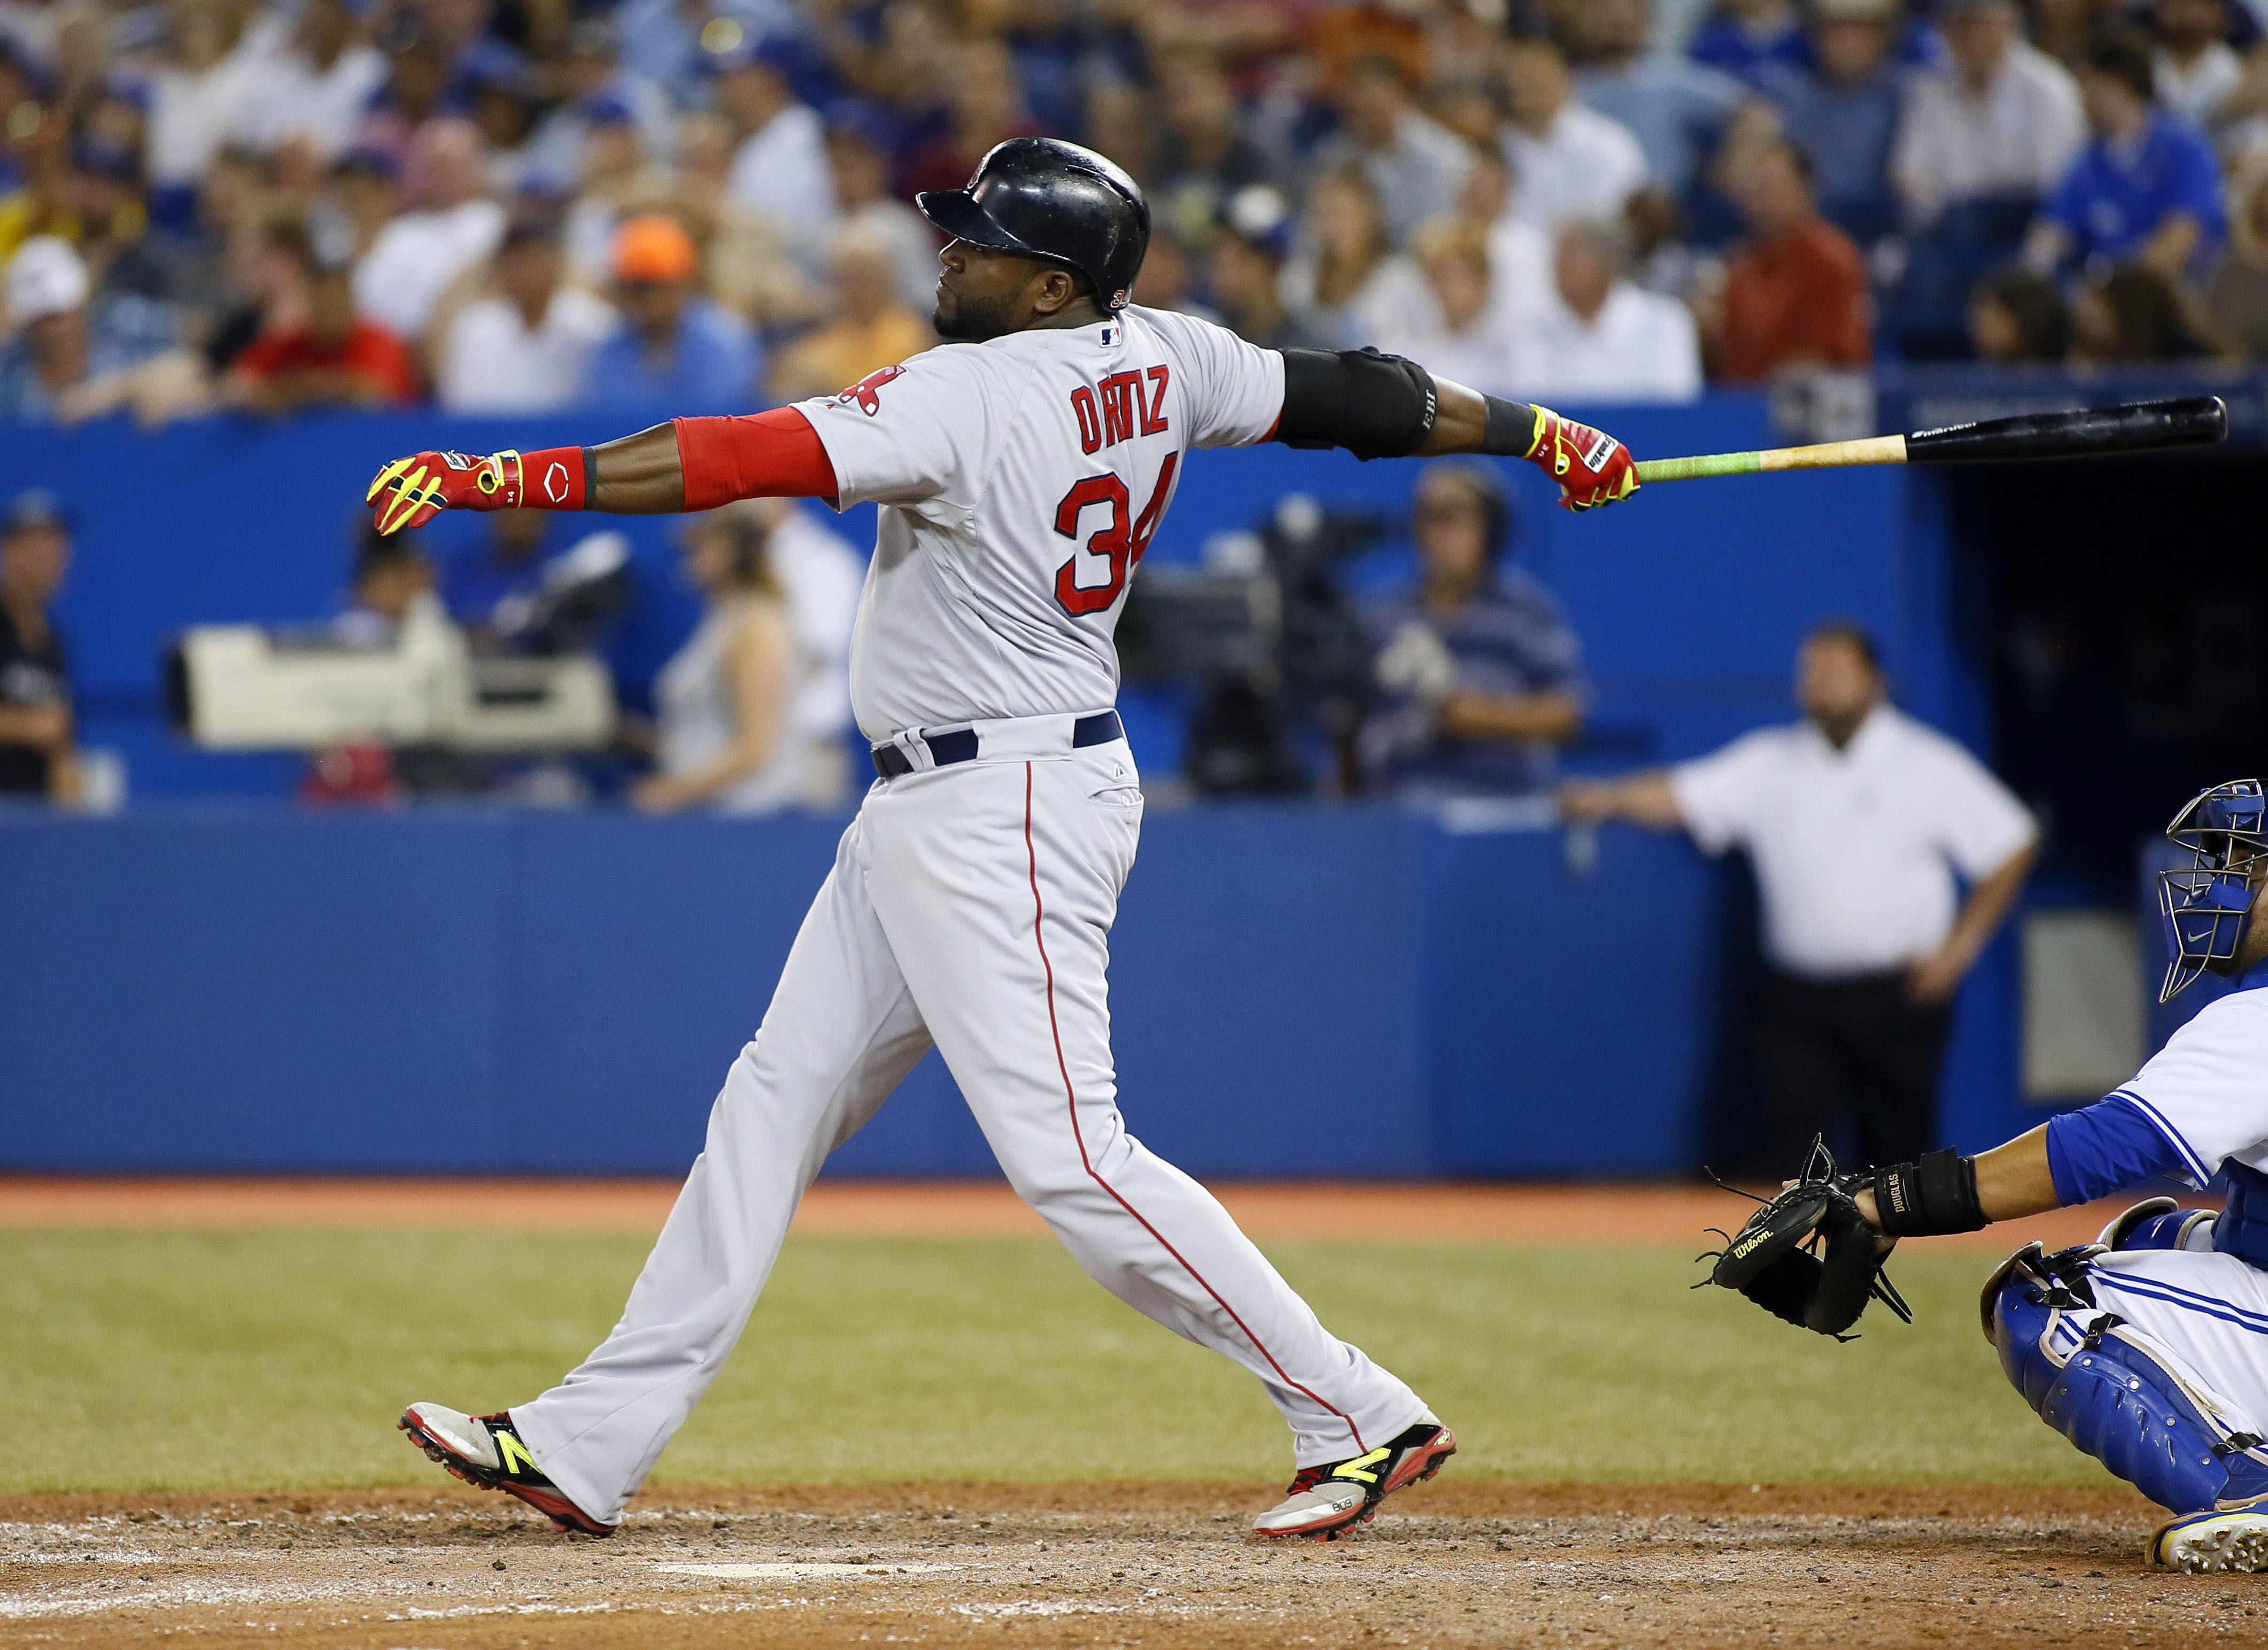 2014-07-23T023906Z_1998993828_NOCID_RTRMADP_3_MLB-BOSTON-RED-SOX-AT-TORONTO-BLUE-JAYS.jpg